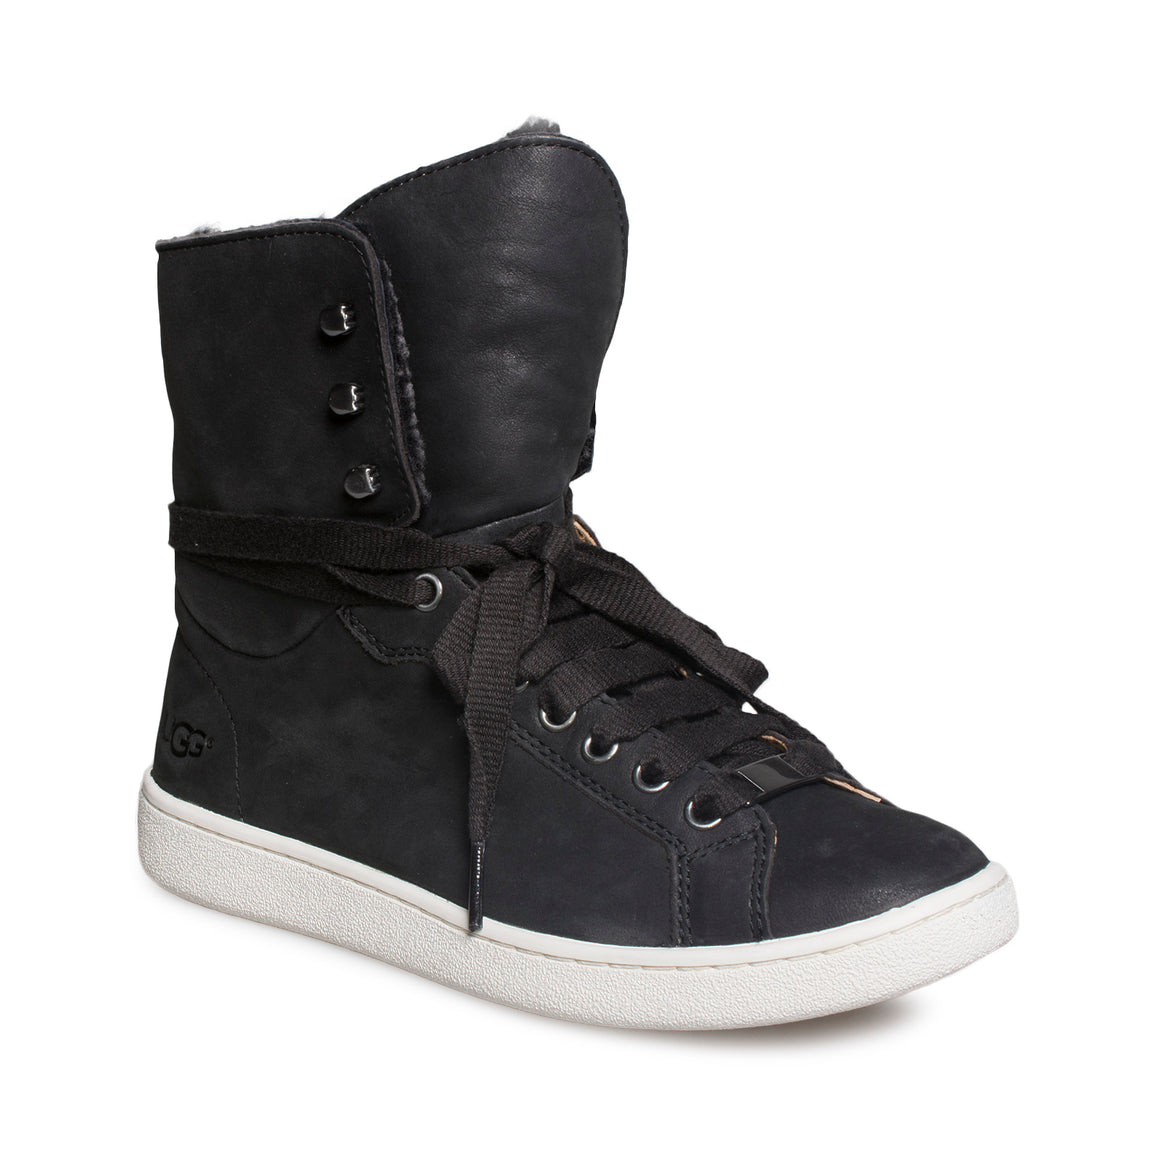 UGG Starlyn Black Sneakers - Women's